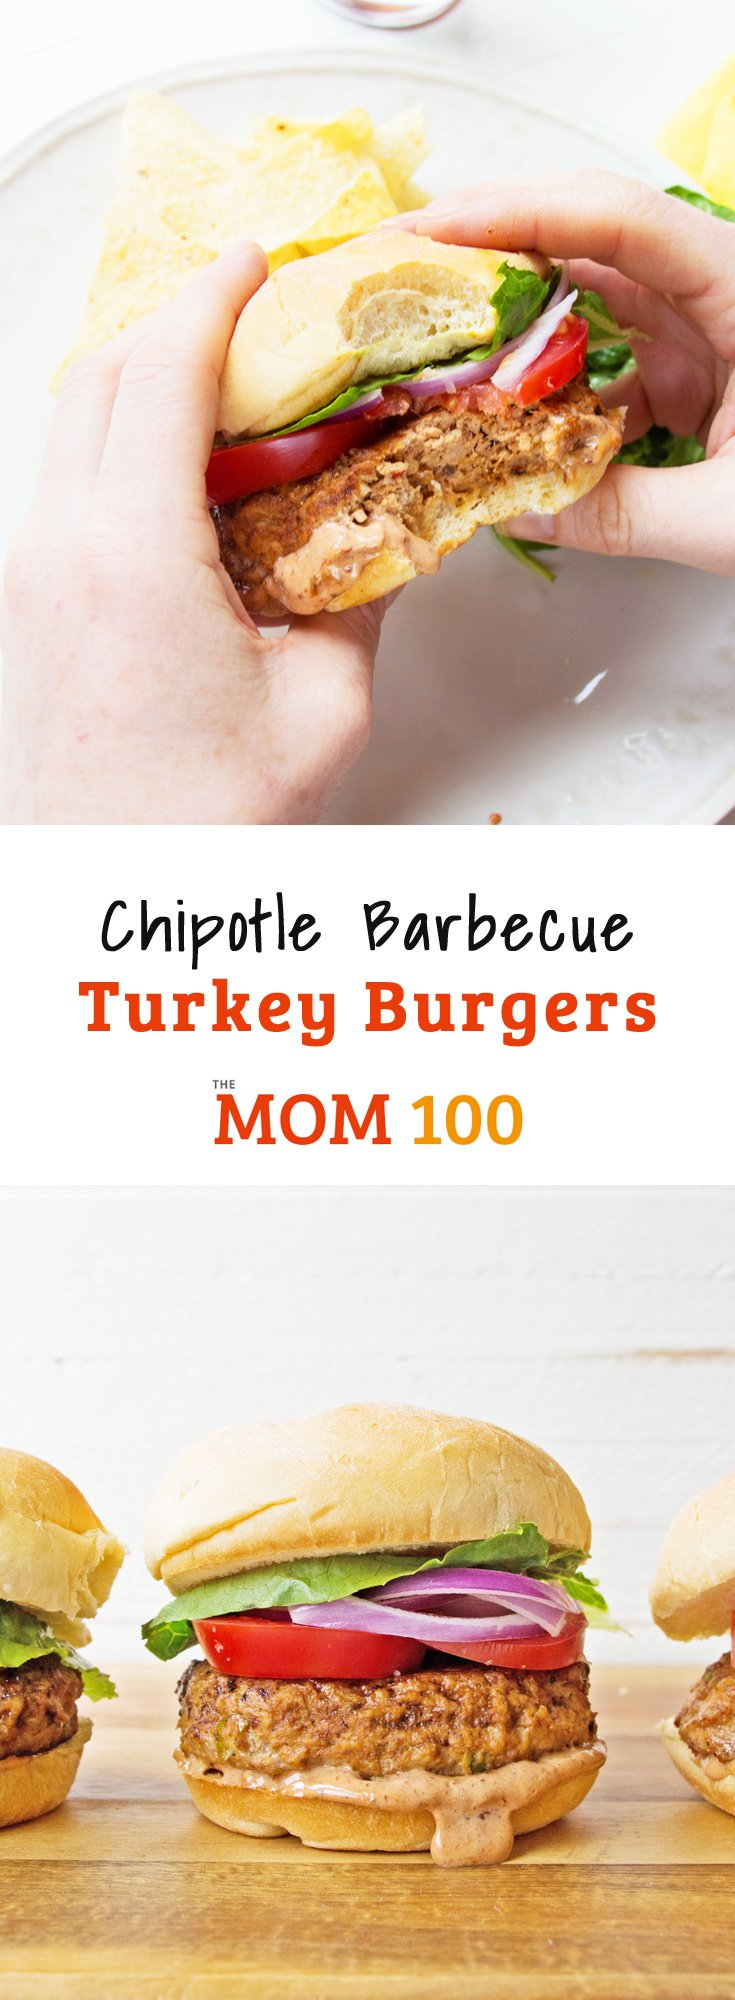 Chipotle Barbecue Turkey Burgers